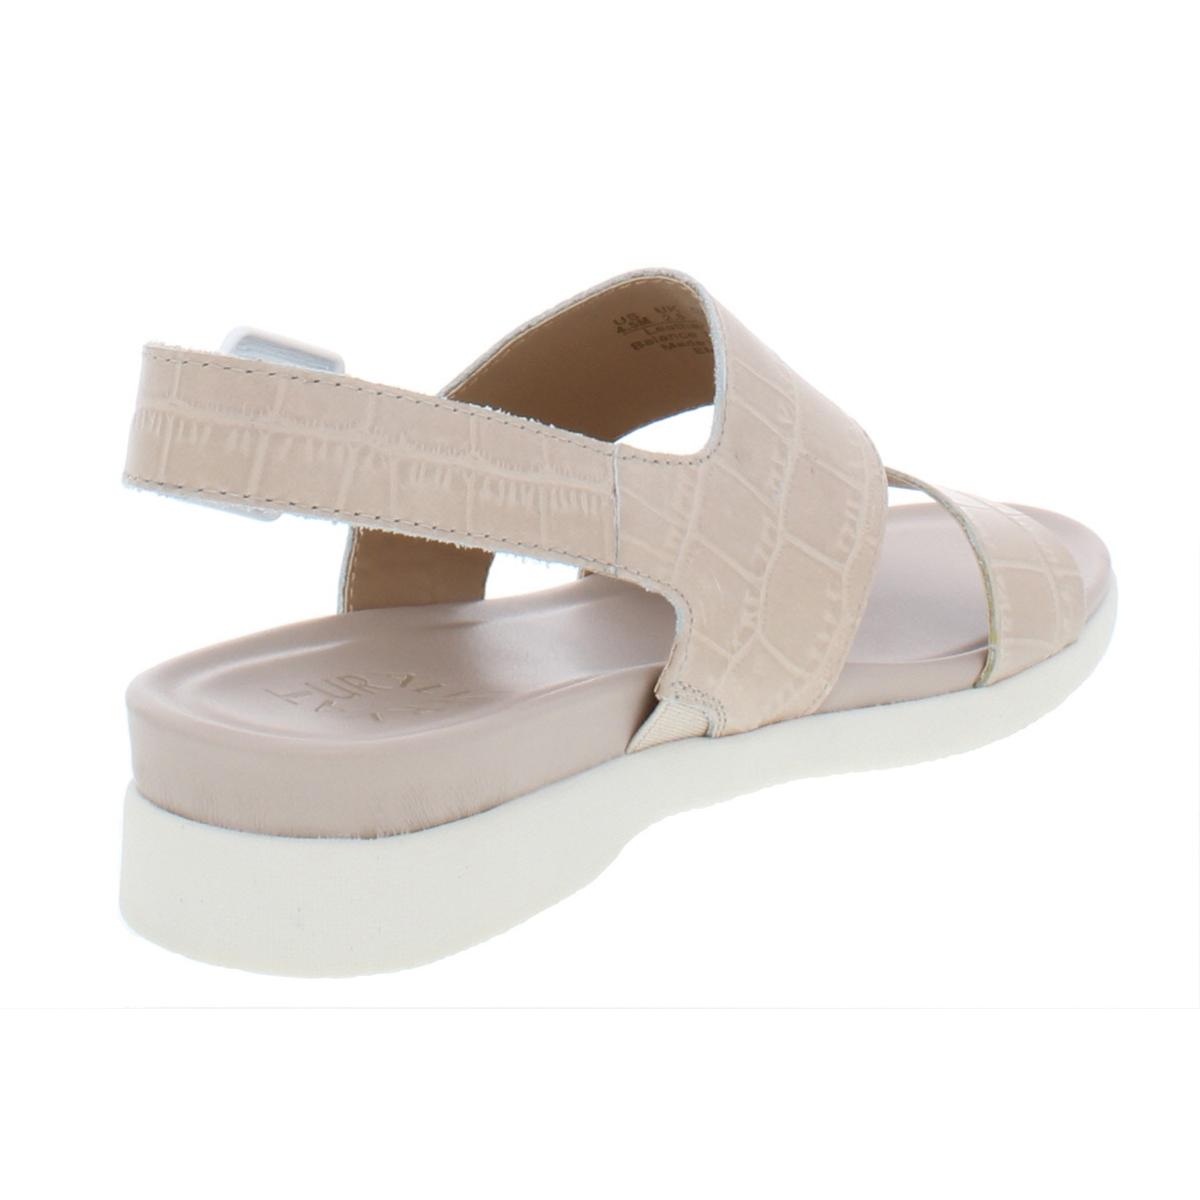 Naturalizer-Womens-Emory-Leather-Demi-Wedge-Casual-Strap-Sandals-Shoes-BHFO-6523 thumbnail 6